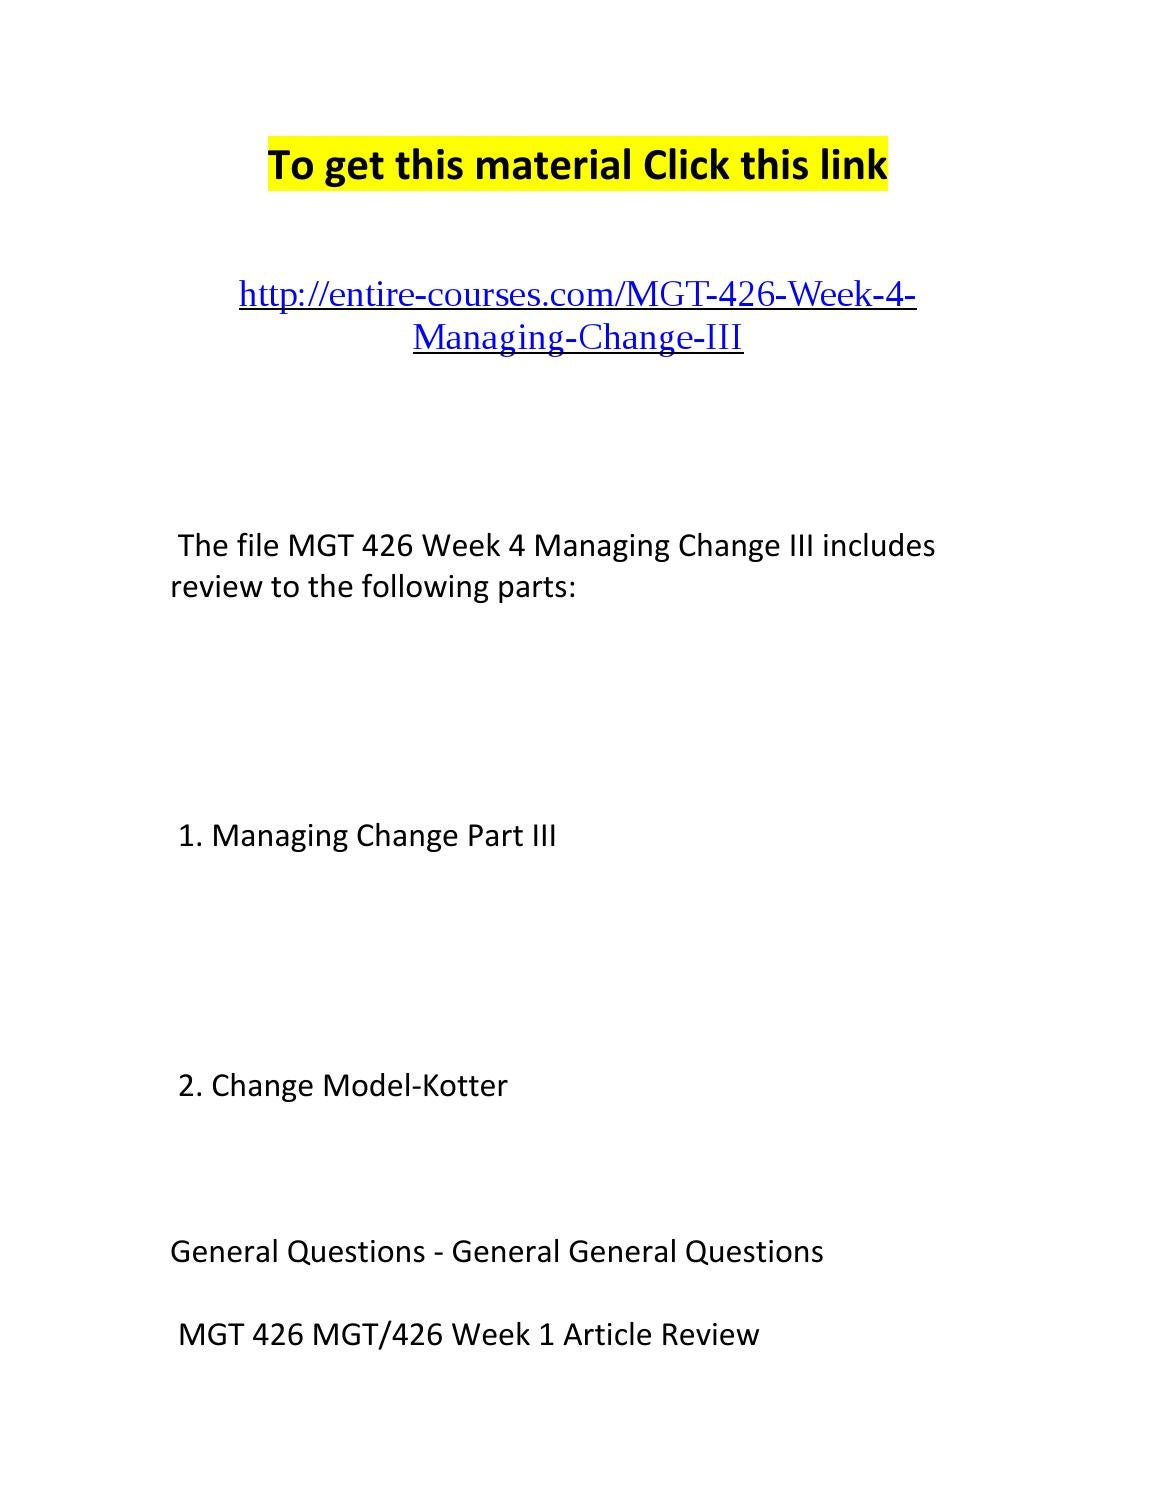 managing change paper part iv Learning team assignment: managing change paper part iv prepare a 1,050- to 1,400-word paper on the sustaining phase of the cycle of change by analyzing the differences between stated change goals and current change status base the paper on the organization selected for your managing change paper part i assess the.